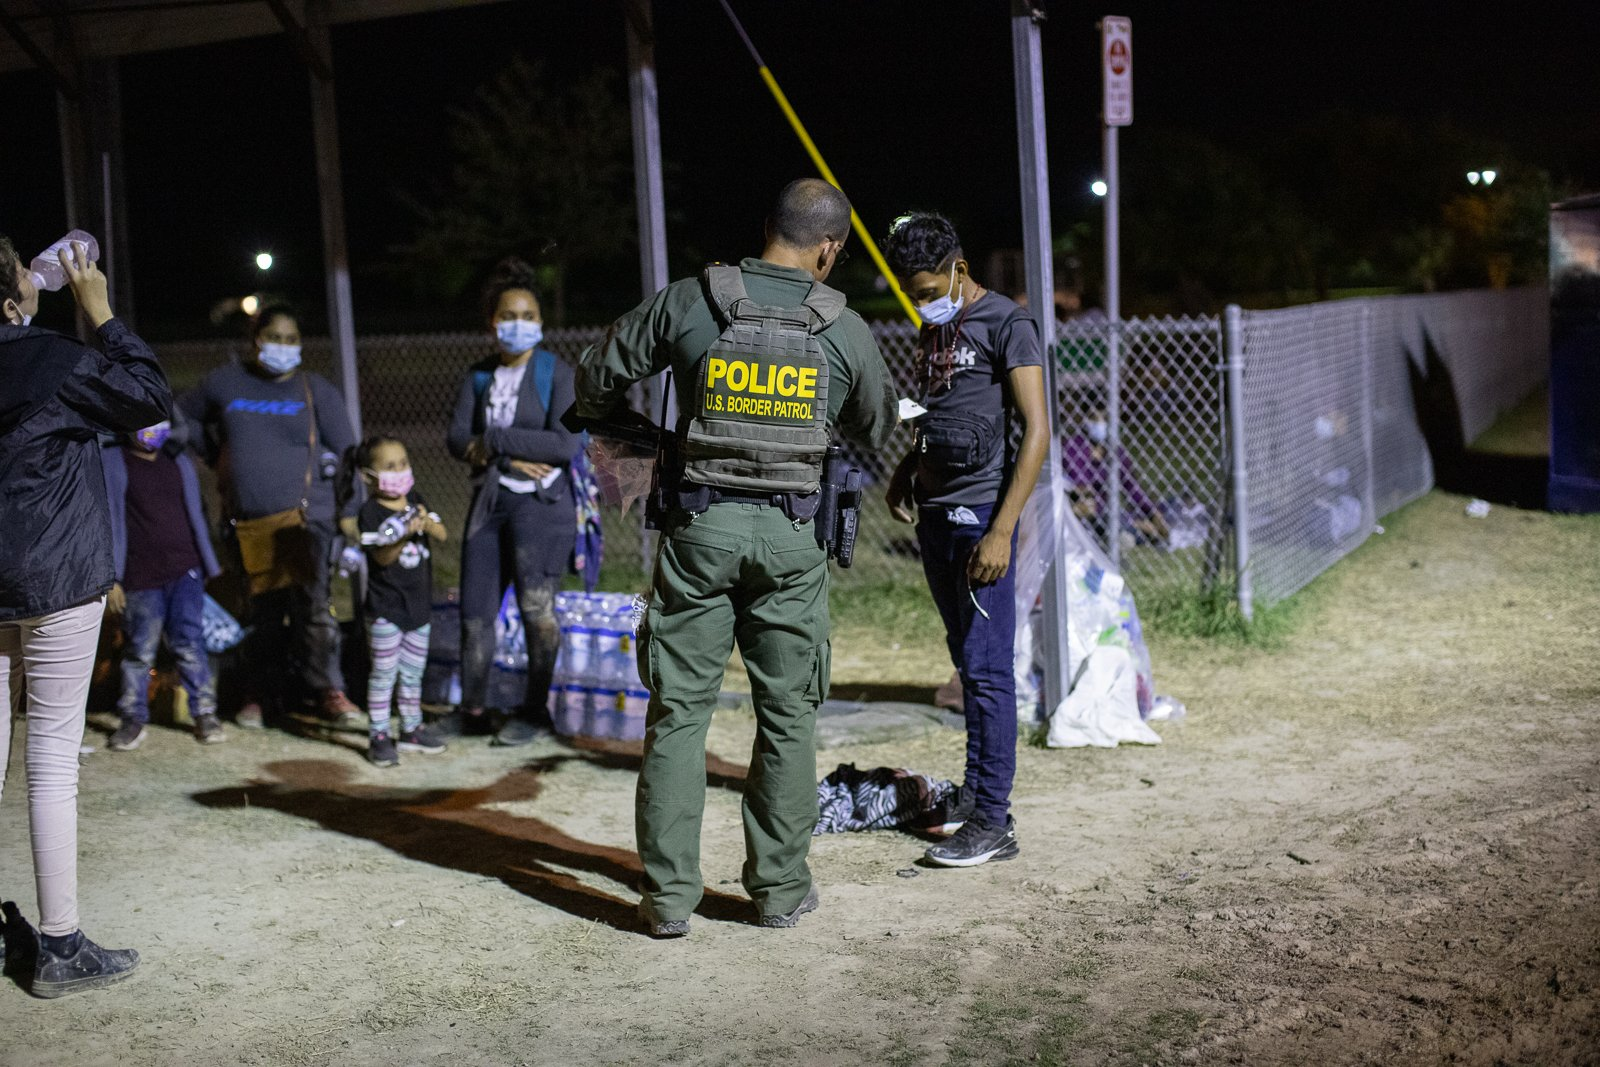 Border officials processed around 100 migrants who surrendered in smaller groups near La Joya, Texas on August 7, 2021. (Kaylee Greenlee - Daily Caller News Foundation)